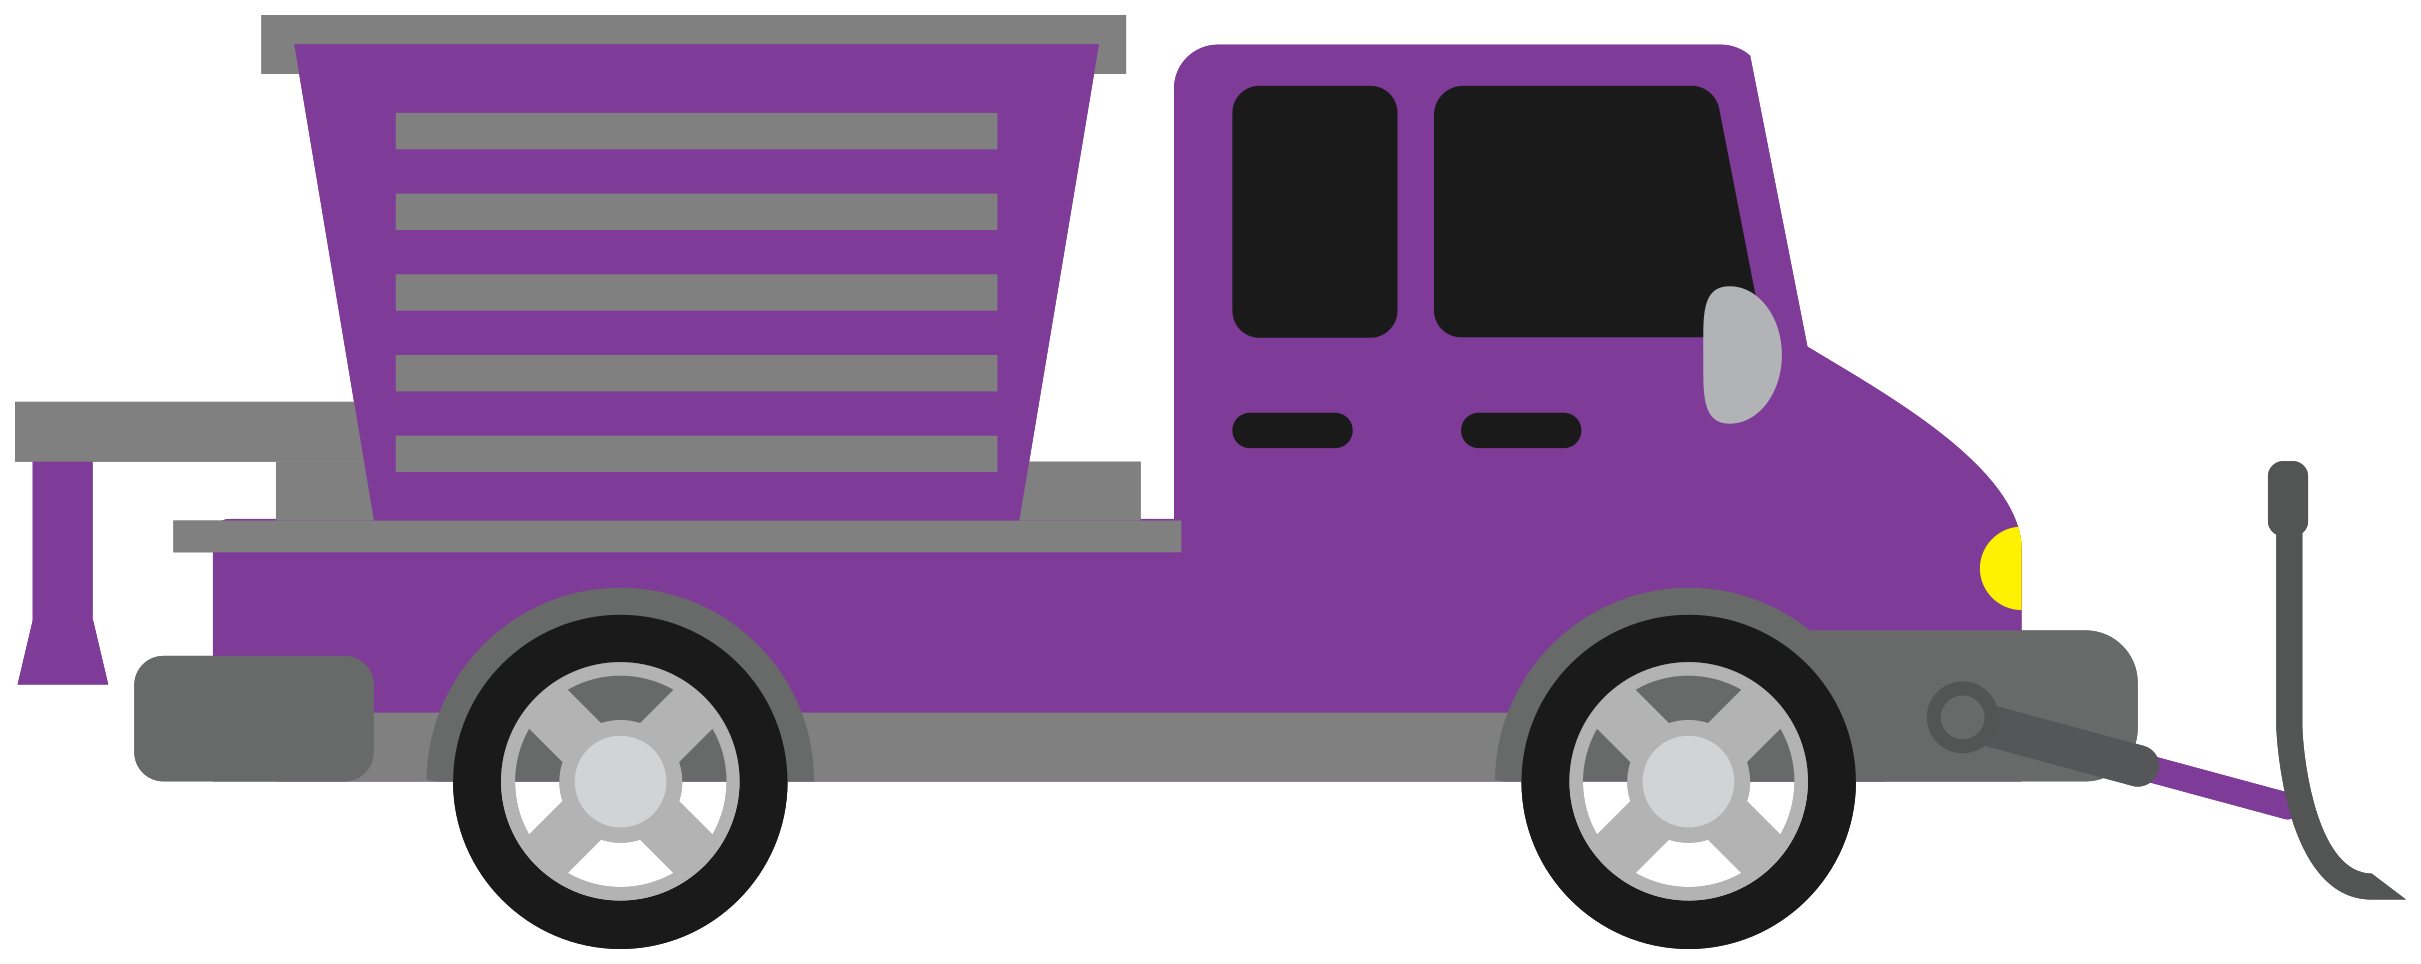 snow plow truck png